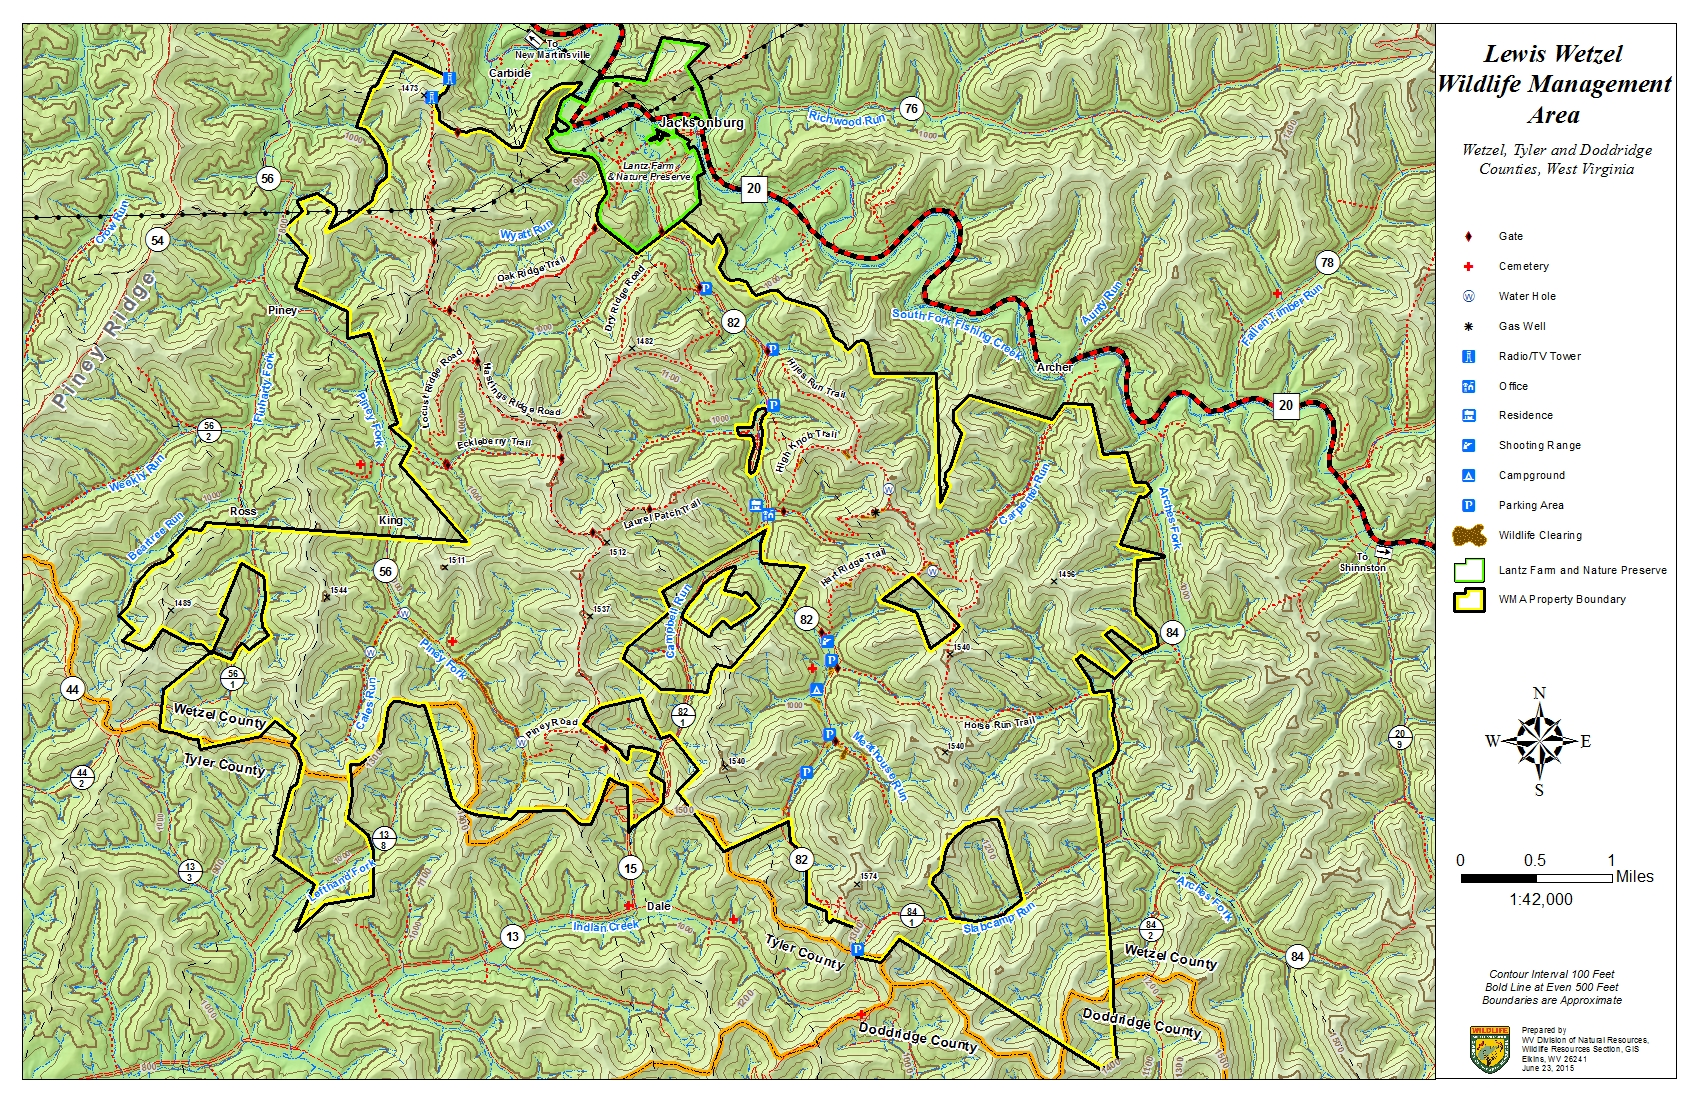 West Virginia DNR WMA Map Project - Maps west virginia